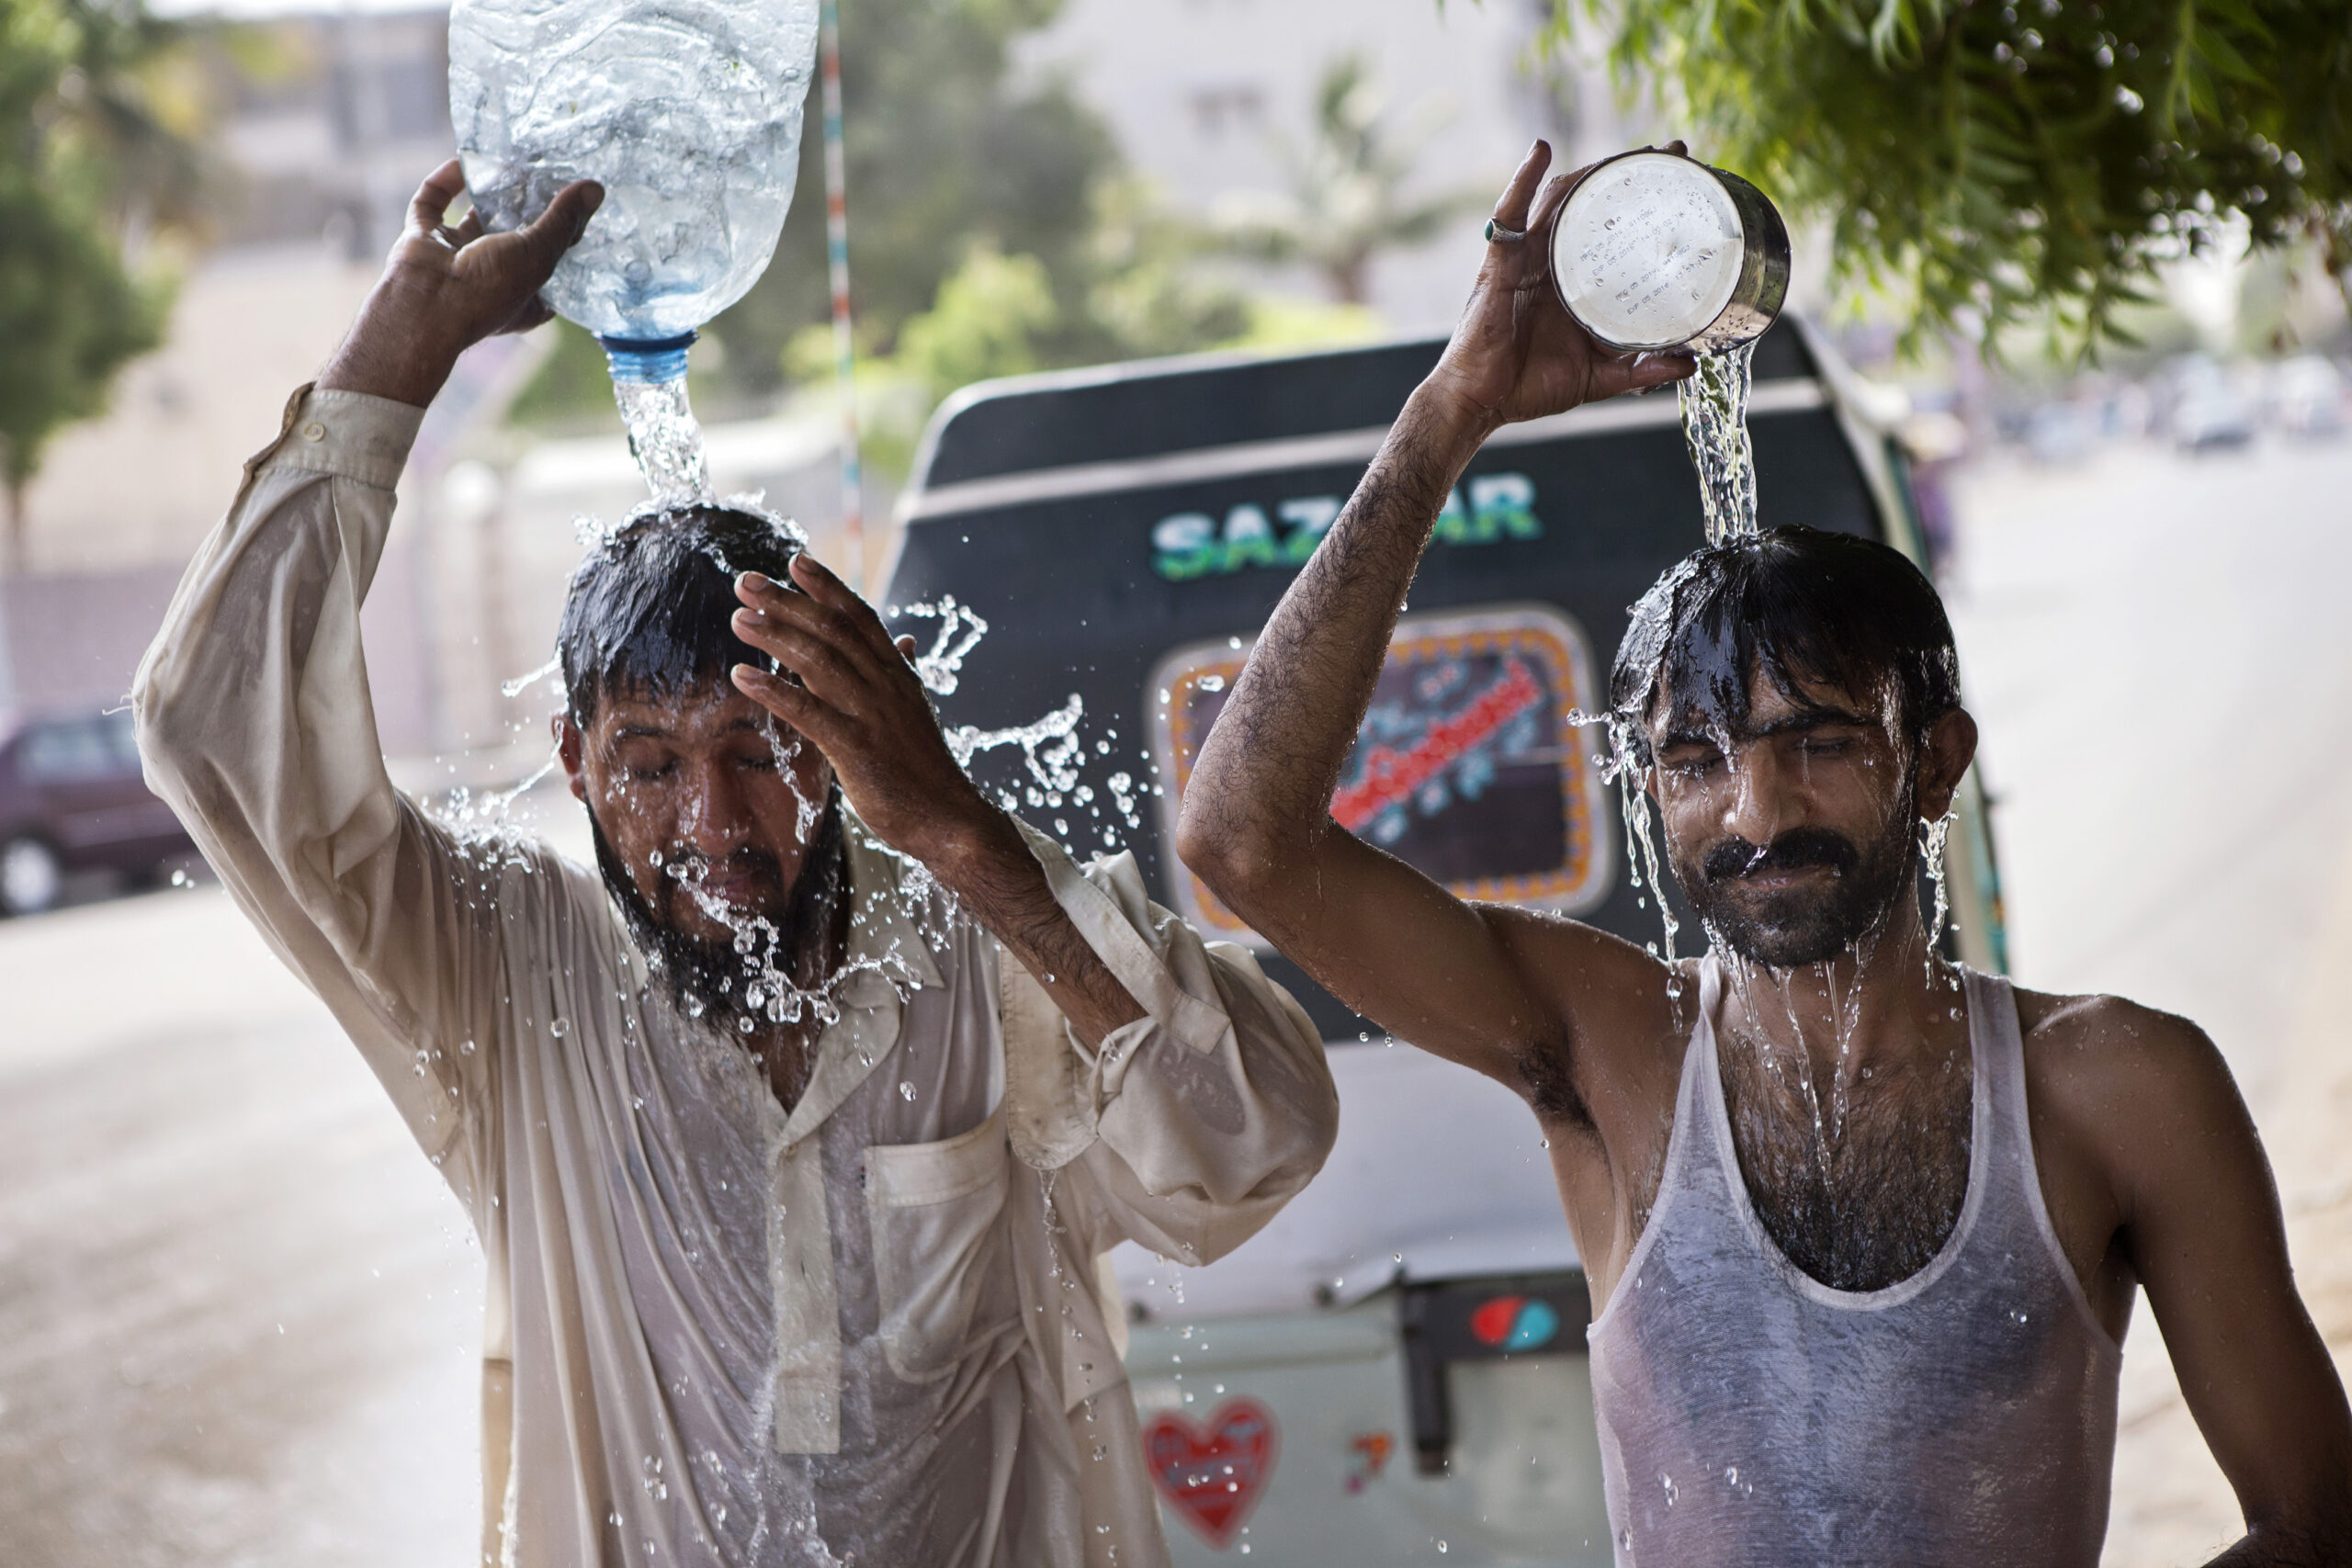 People pour water over themselves at a broken water pipe during a heat wave in Karachi, Pakistan on June 29, 2015. Credit: Asim Afeez/Bloomberg via Getty Images